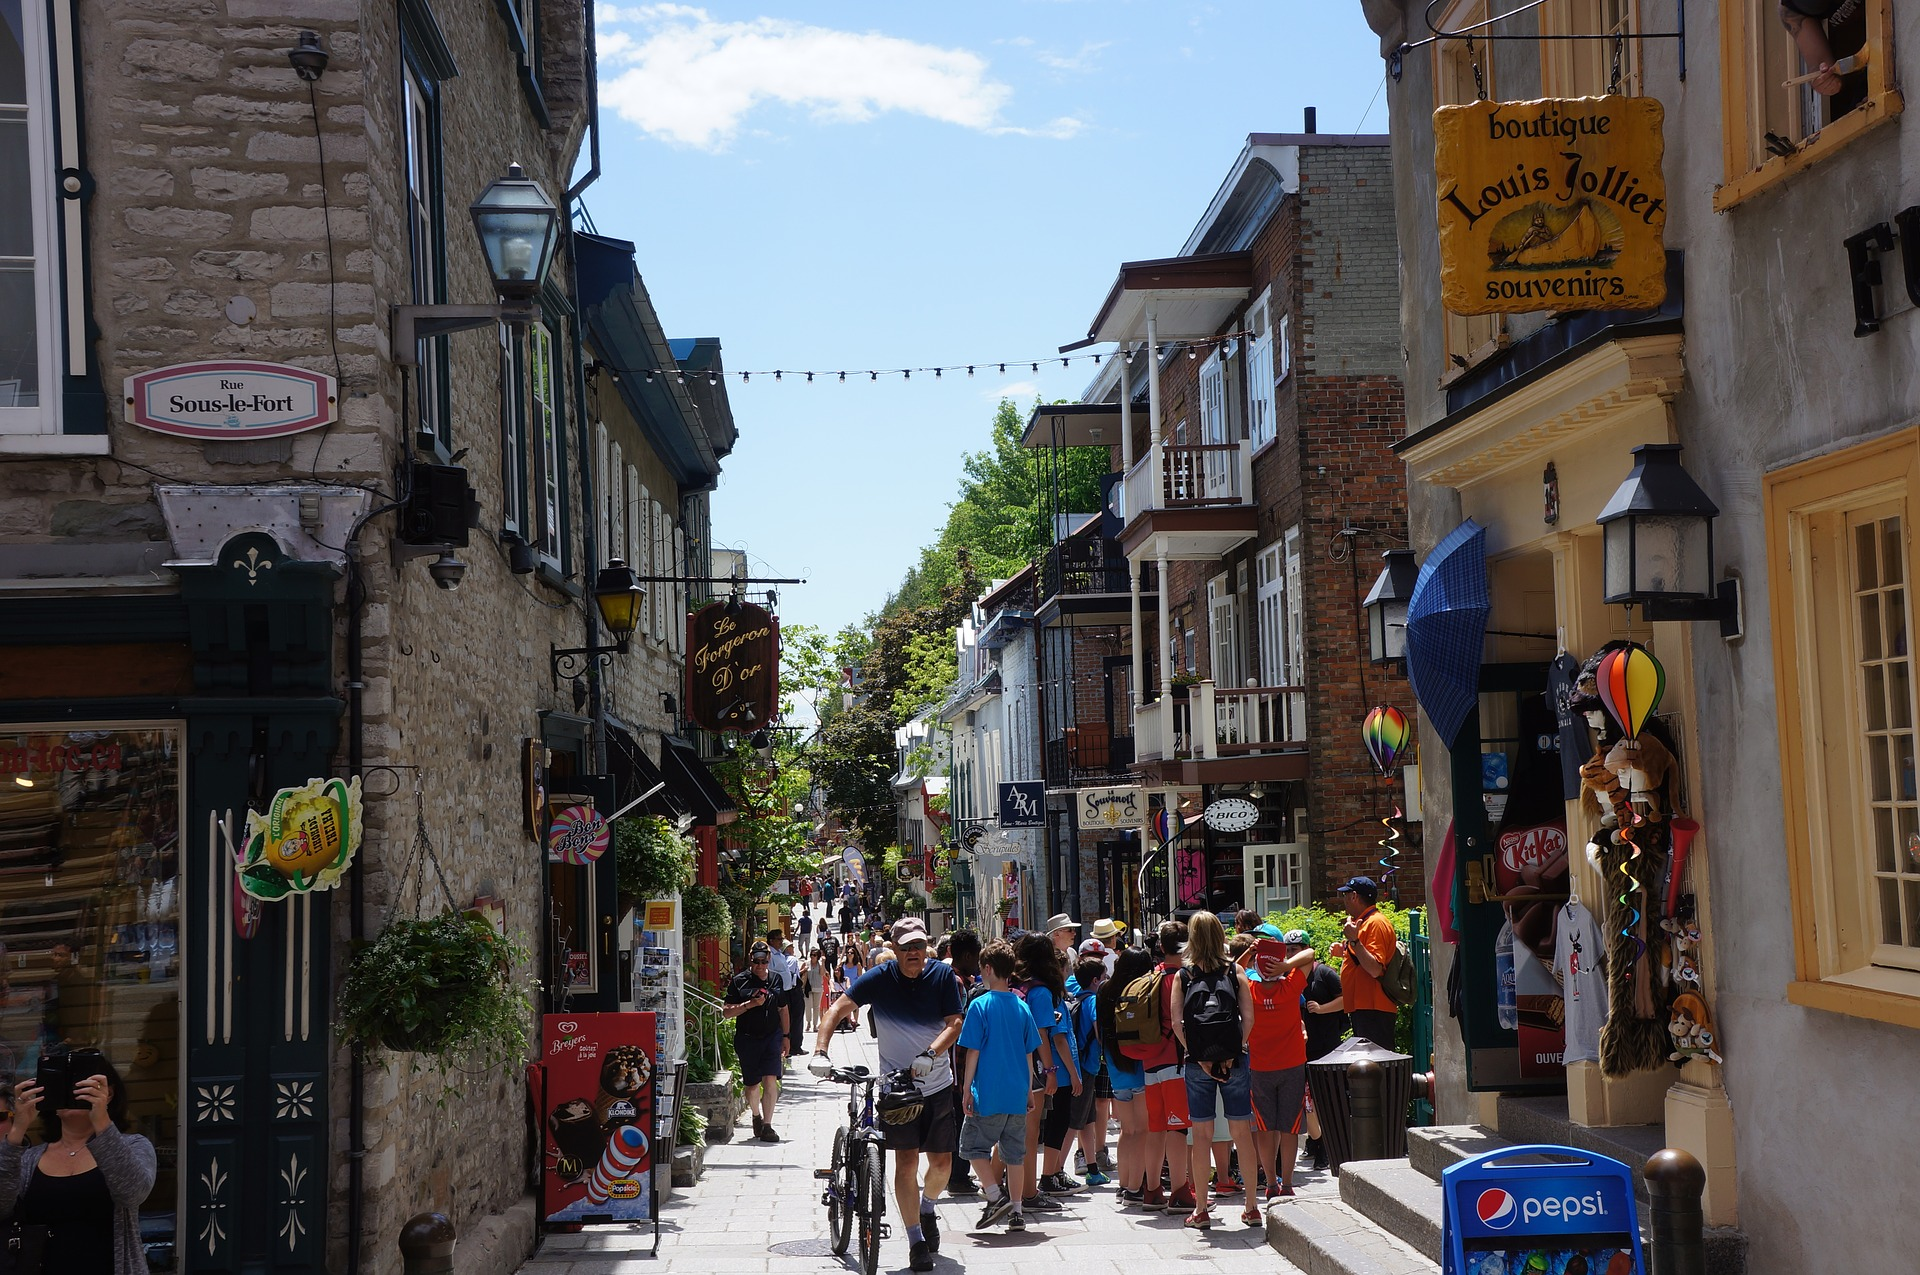 summer-street-old-quebec.jpg